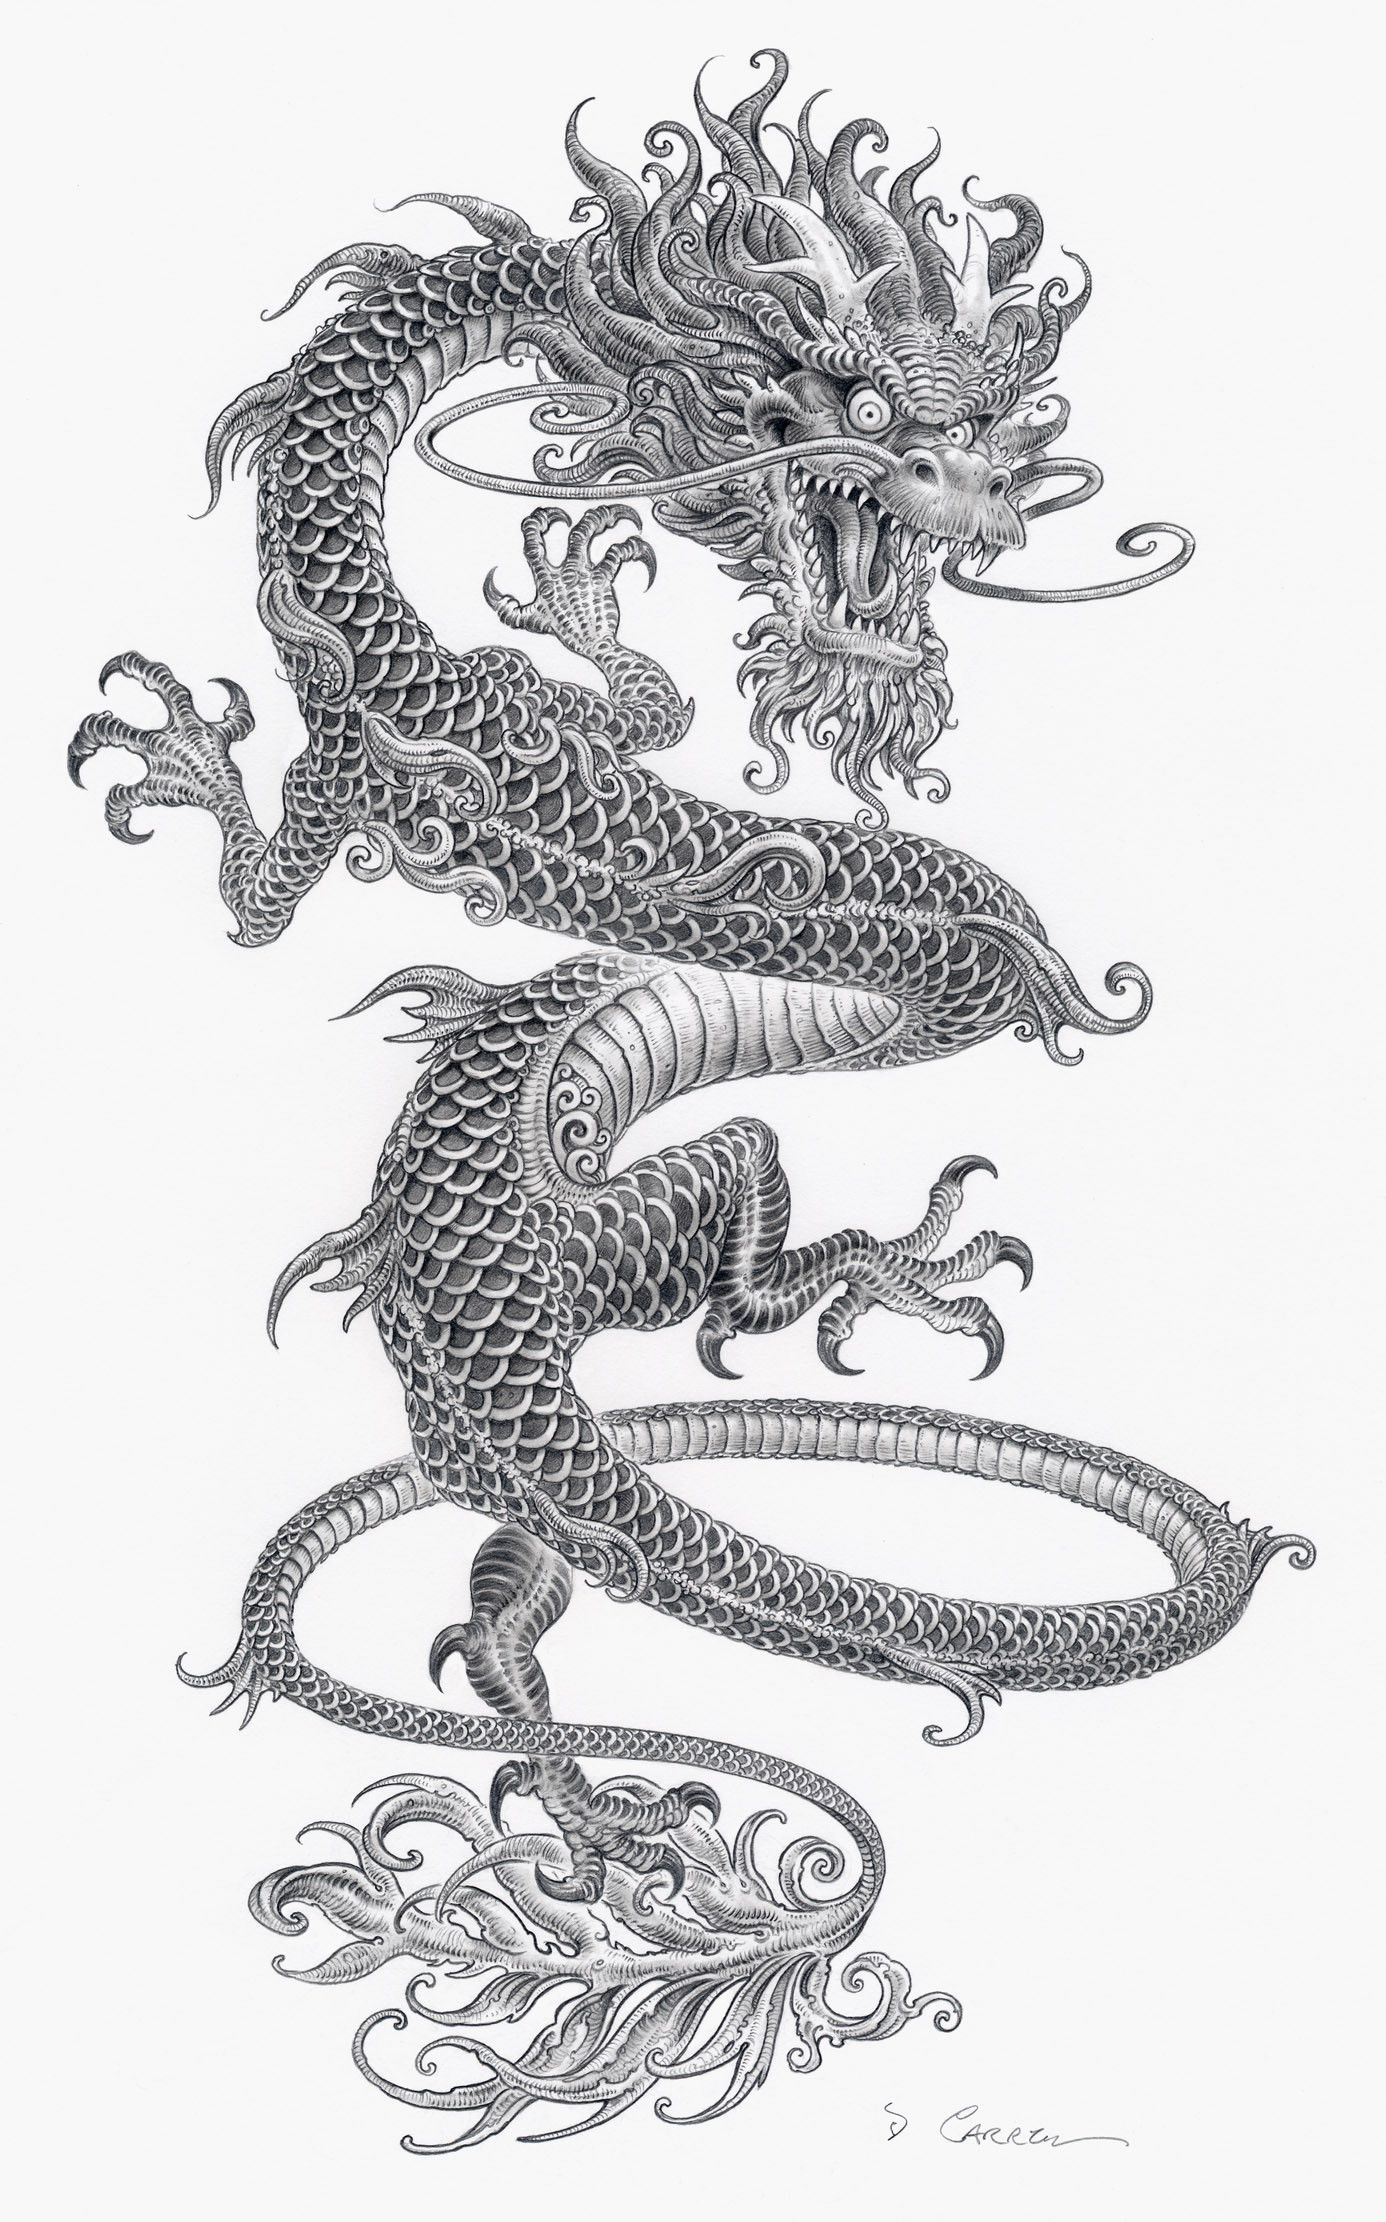 Tatuajes Japoneses Dragones artstation - swirling lung, douglas carrel | dragontatto | pinterest